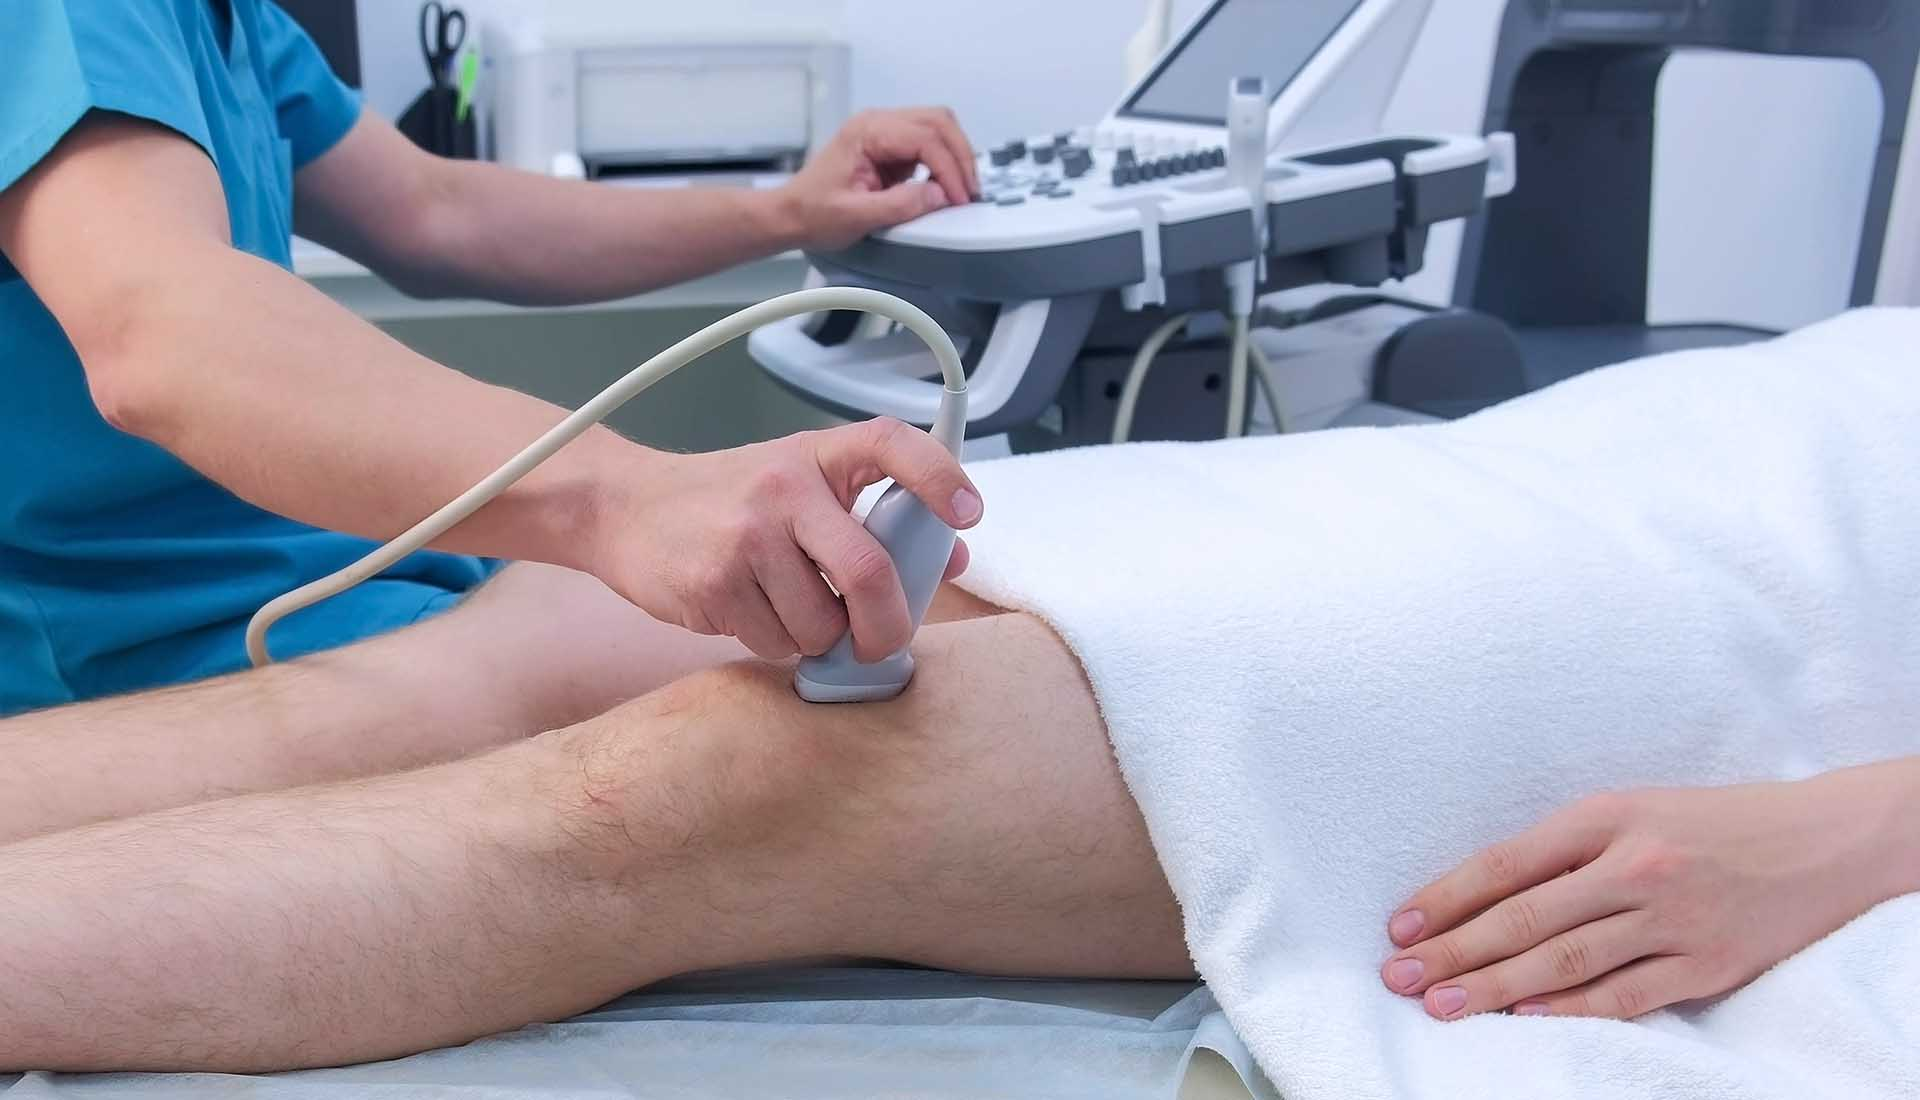 Doctor makes ultrasound of knee joint.